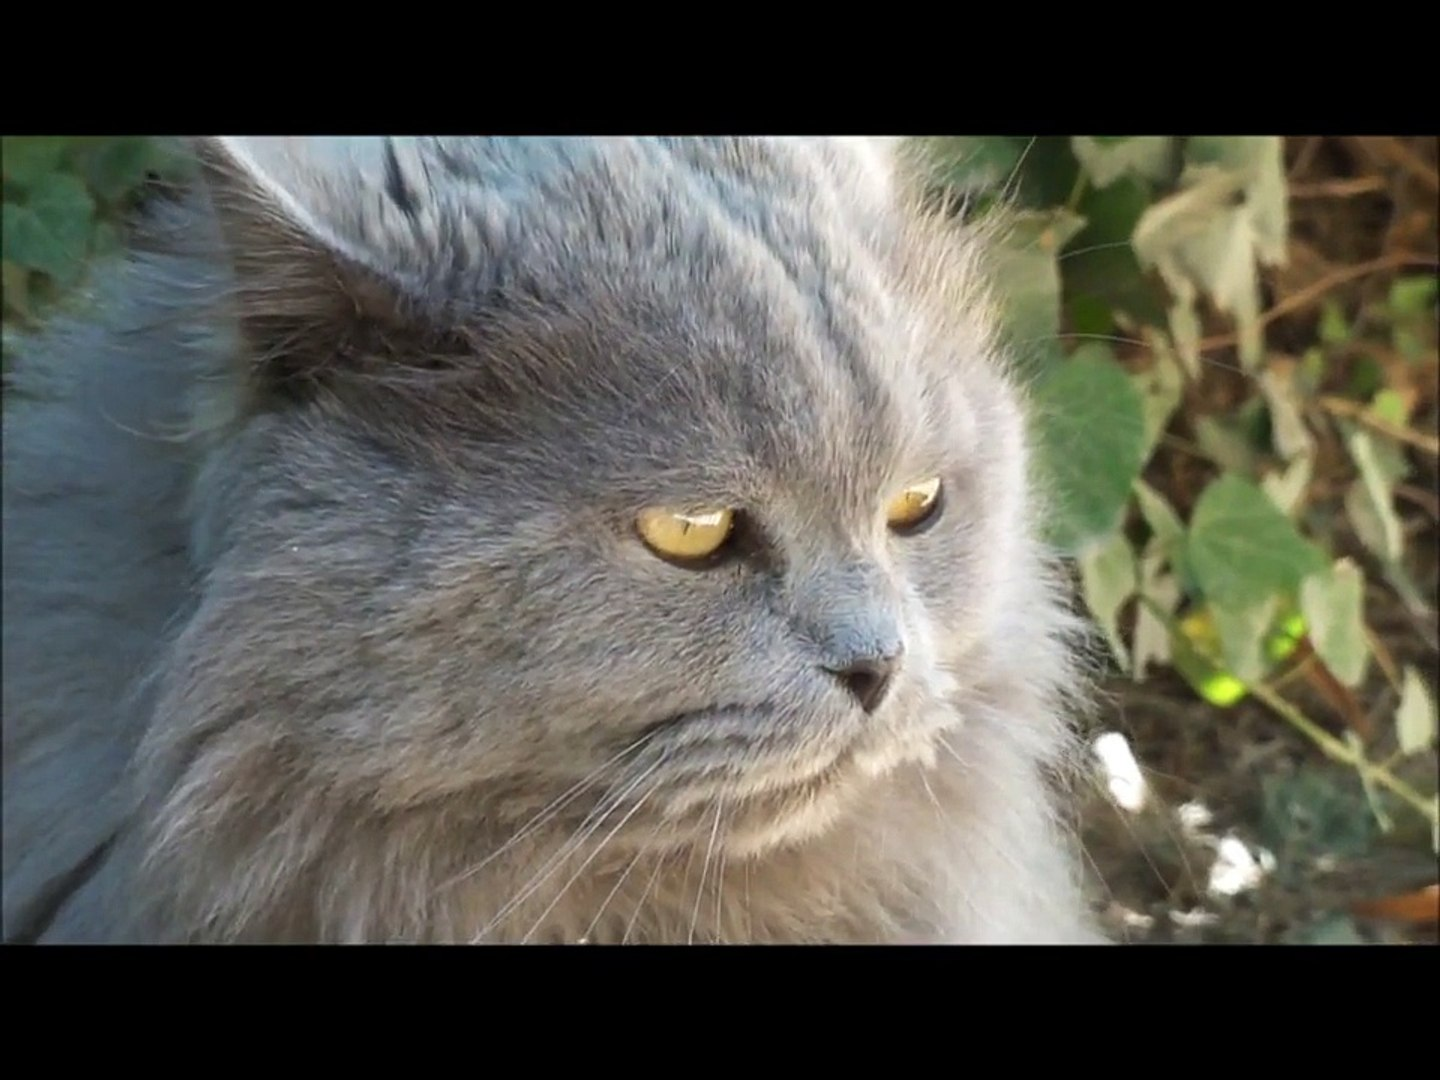 CUTE FLUFFY CAT PURRING WHILE BEING STROKED, CATS VIDEOS, CUTE ANIMAL VIDEOS, CUTE CAT